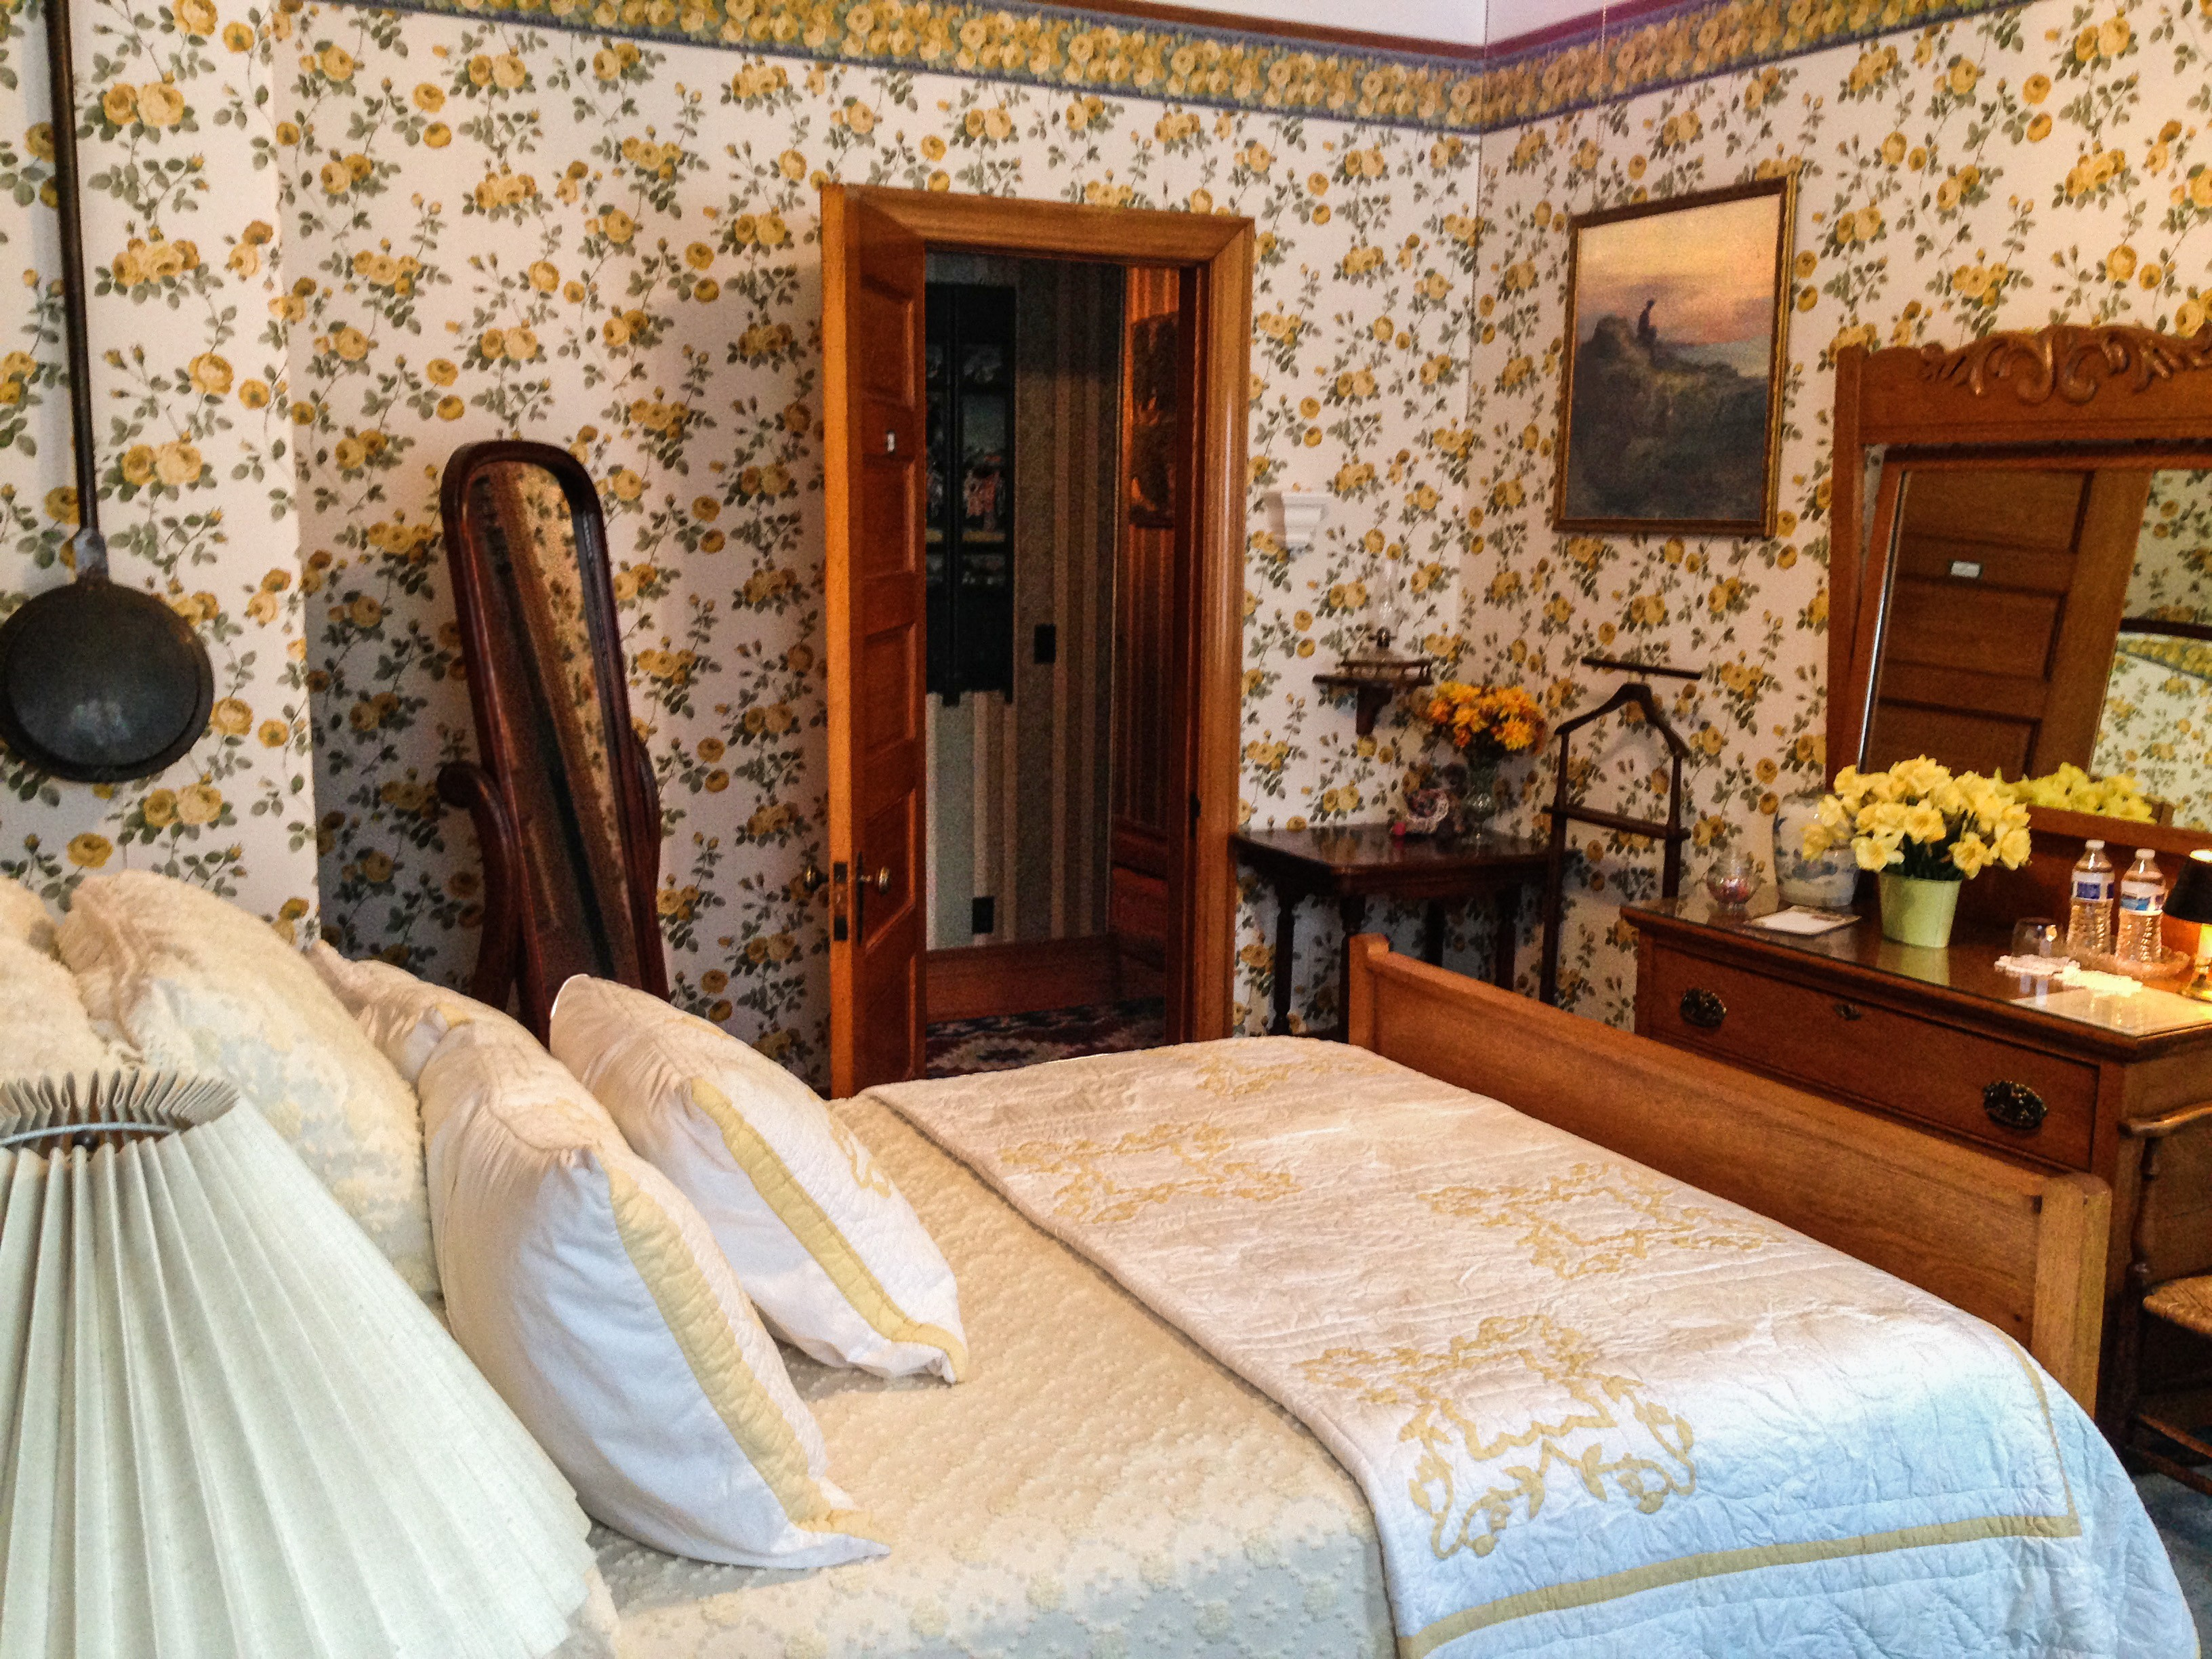 The Charm of the Yellow Room